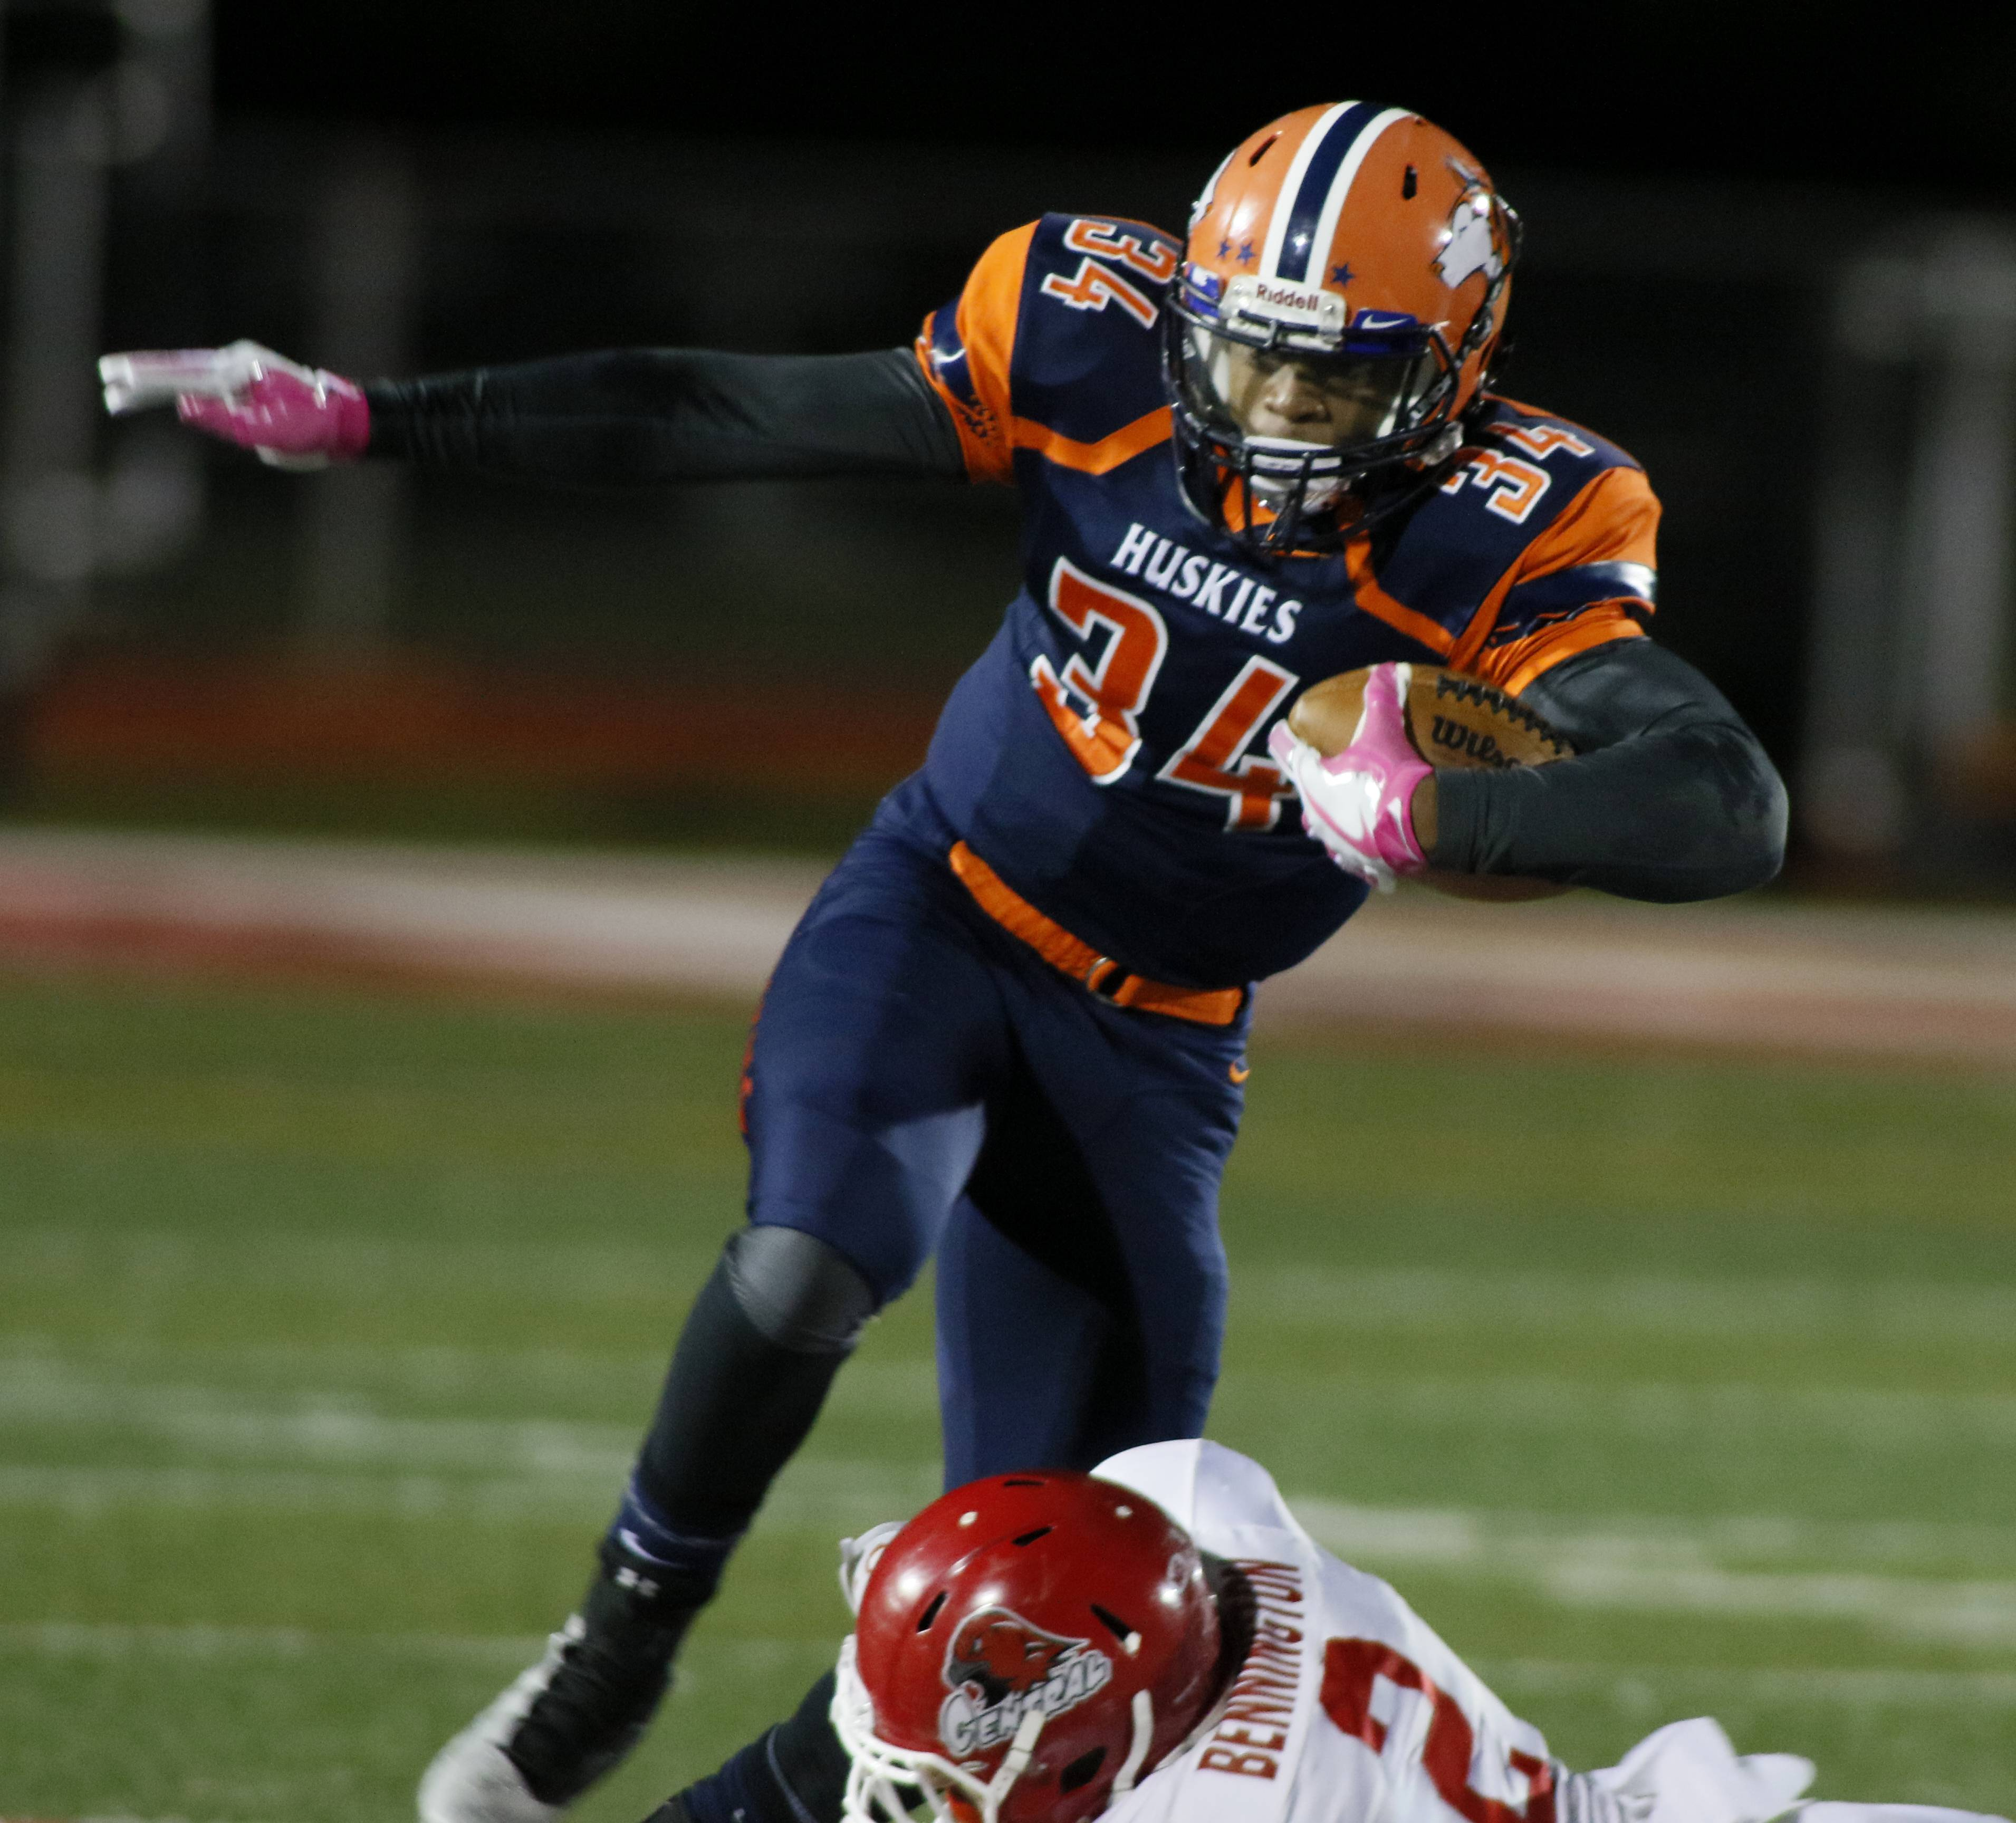 Images: Naperville Central vs. Naperville North football